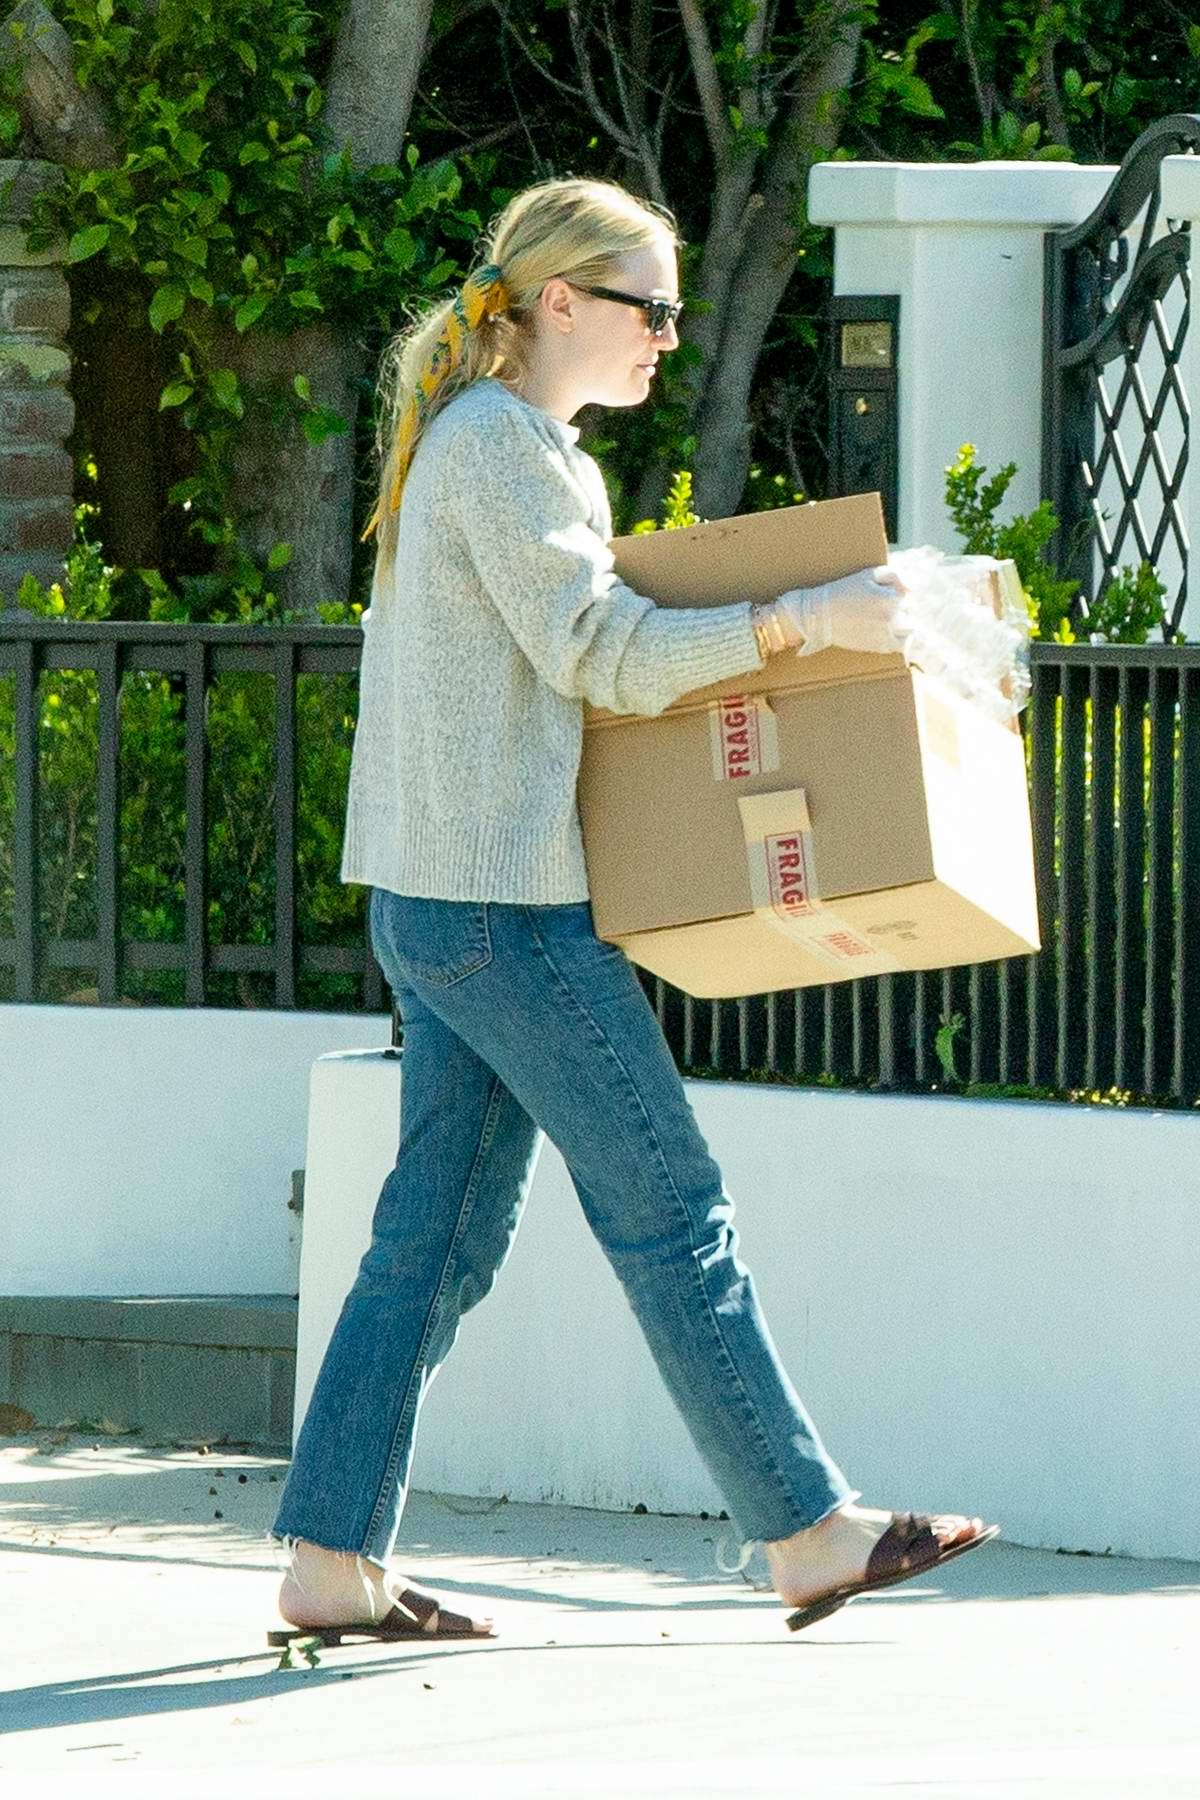 Dakota Fanning takes some stuff to her new home amid 'Stay-at-Home' order in Los Angeles